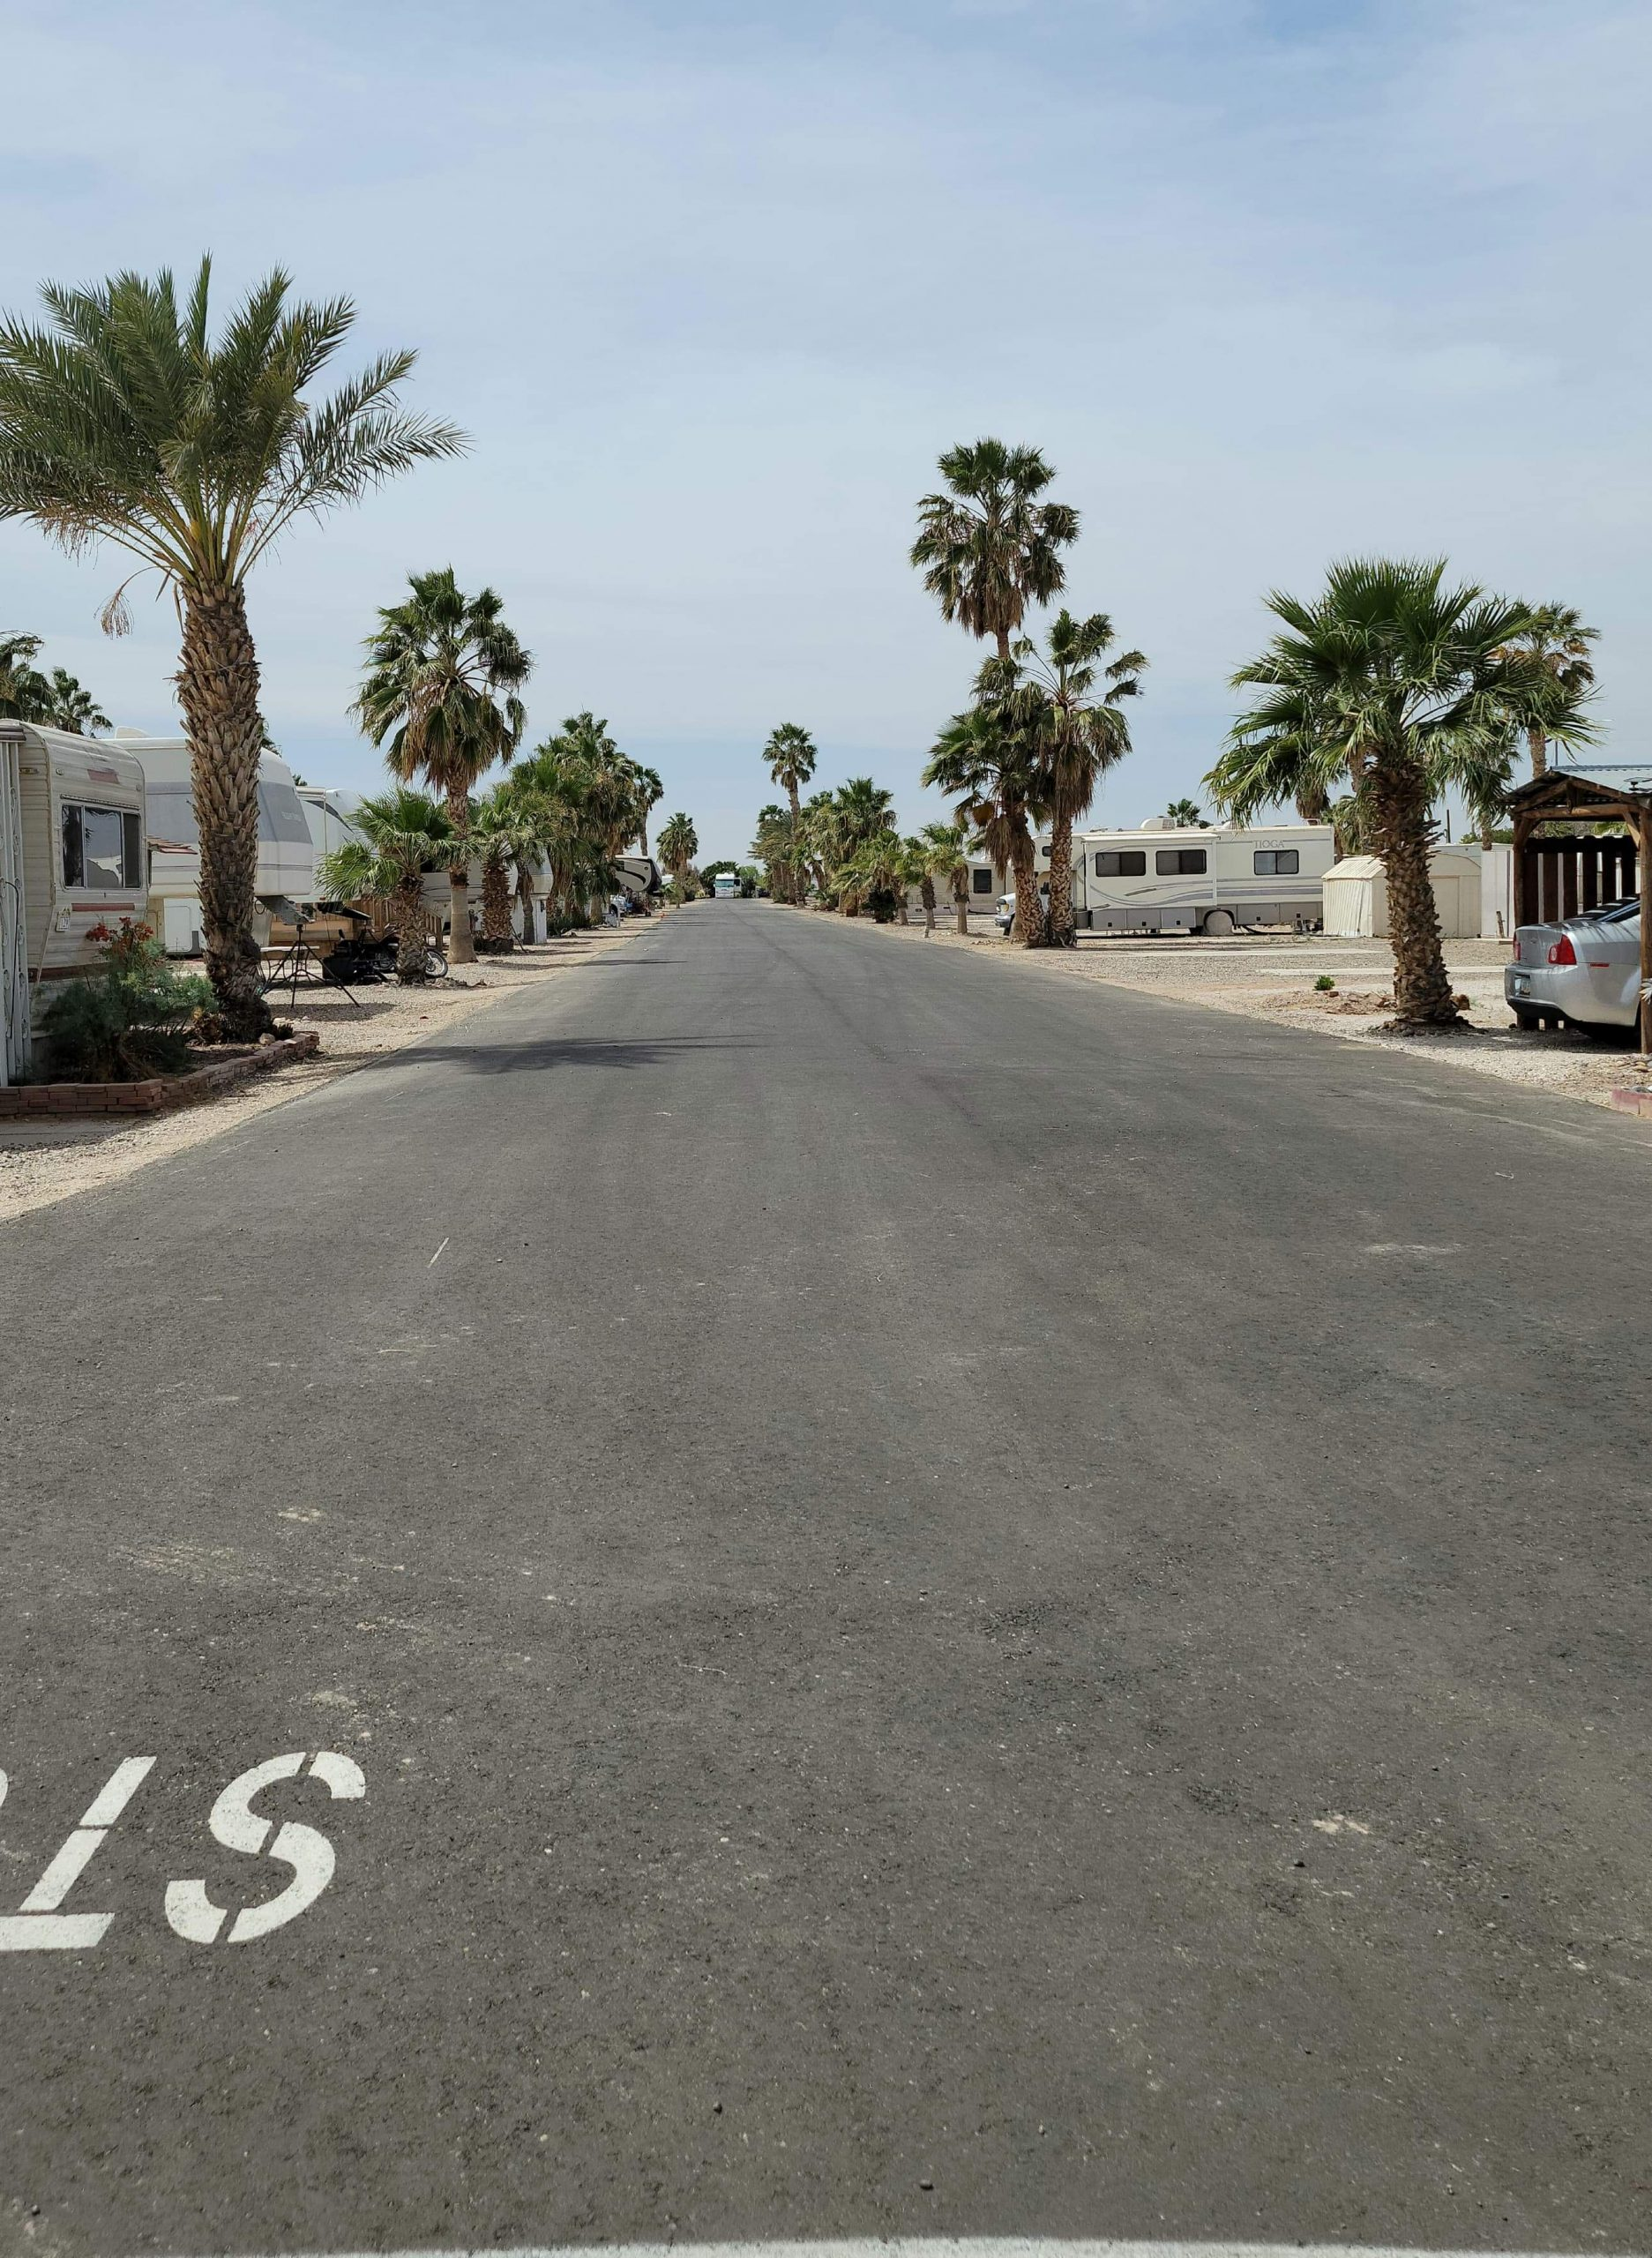 Road with units on left and ride side along with palm trees on the edge of the road.